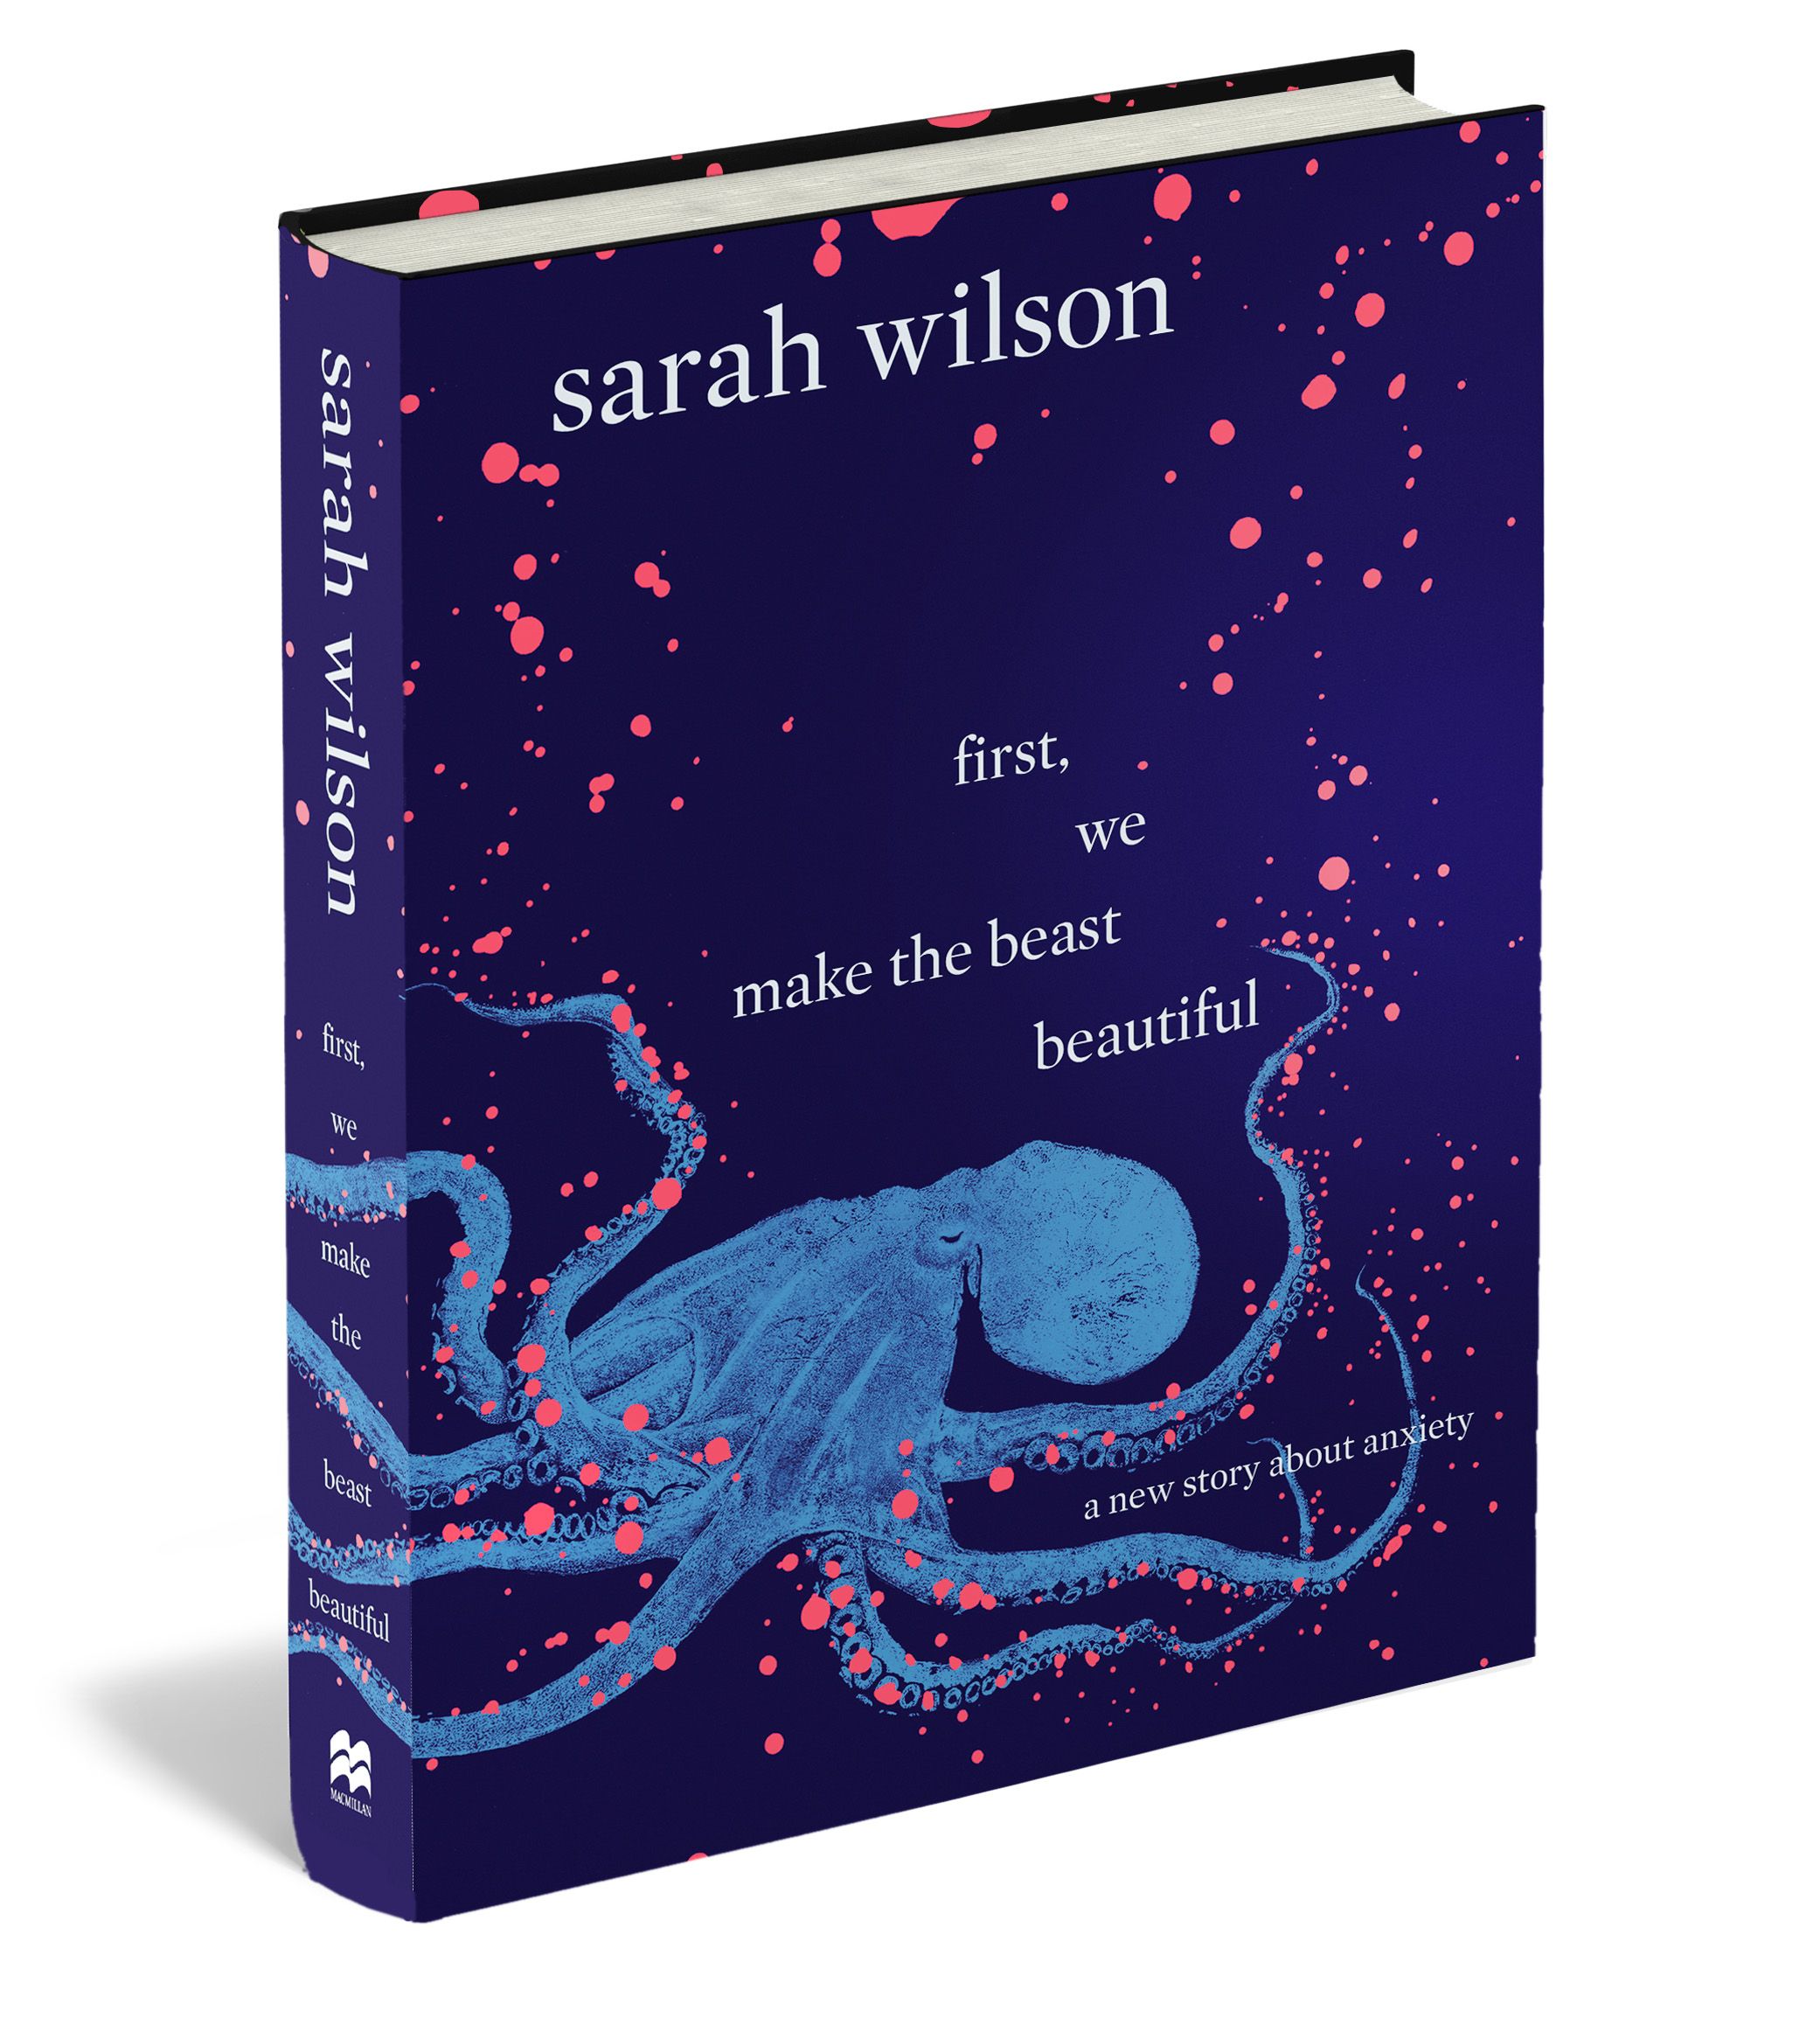 First, we make the beast beautiful by Sarah Wilson, ISBN: 9781743535868